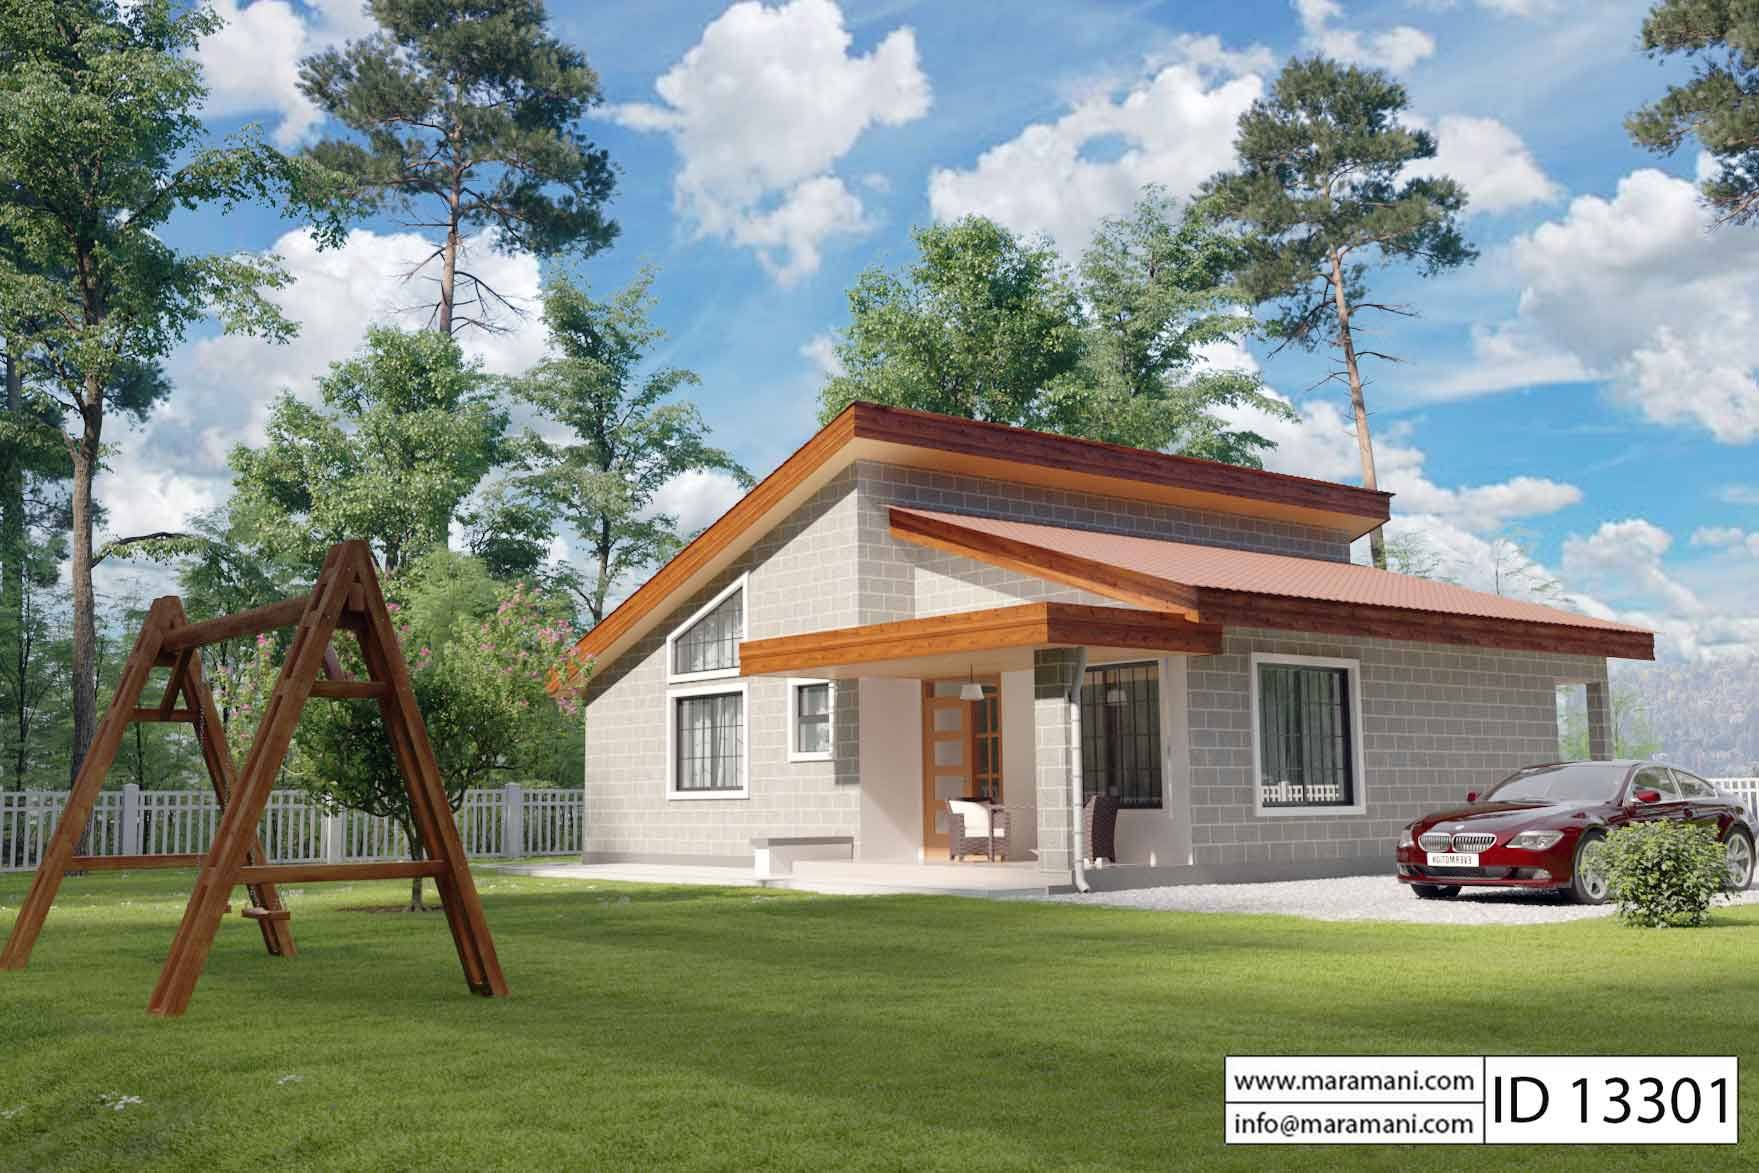 3 bedroom cottage id 13301 house designs by maramani for Idaho home plans